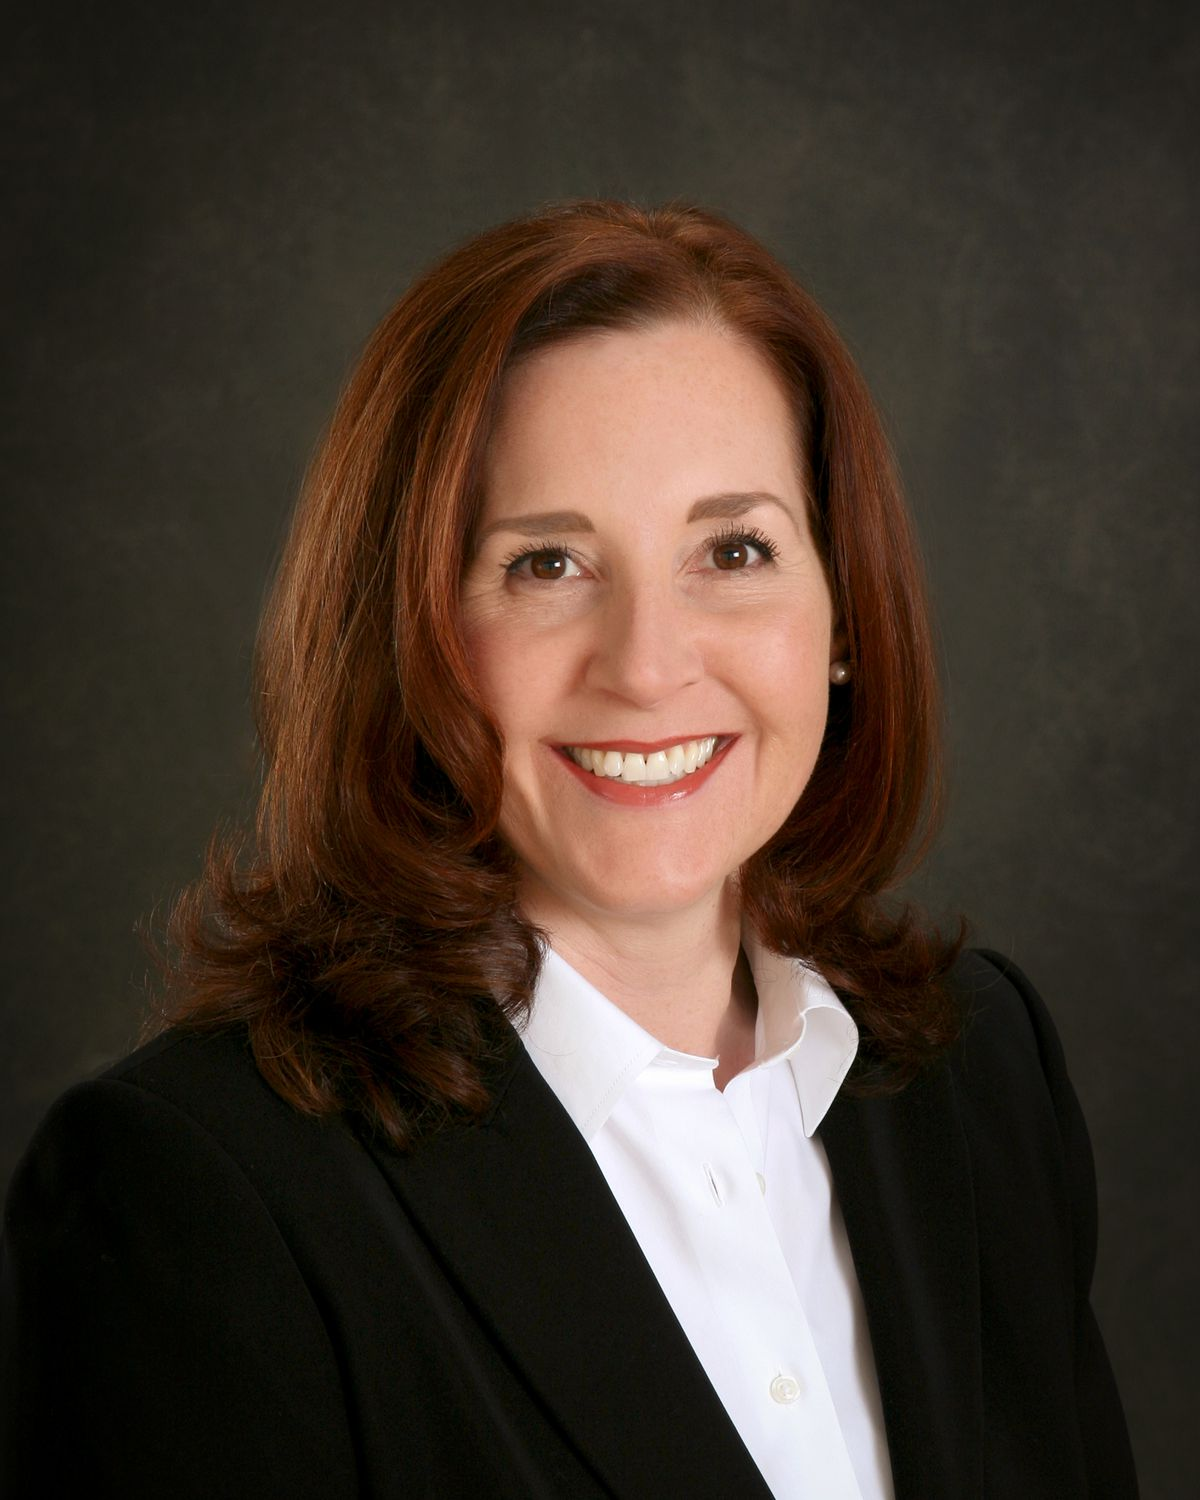 Michigan Rep. Pamela Hornberger heads up the House Education Committee